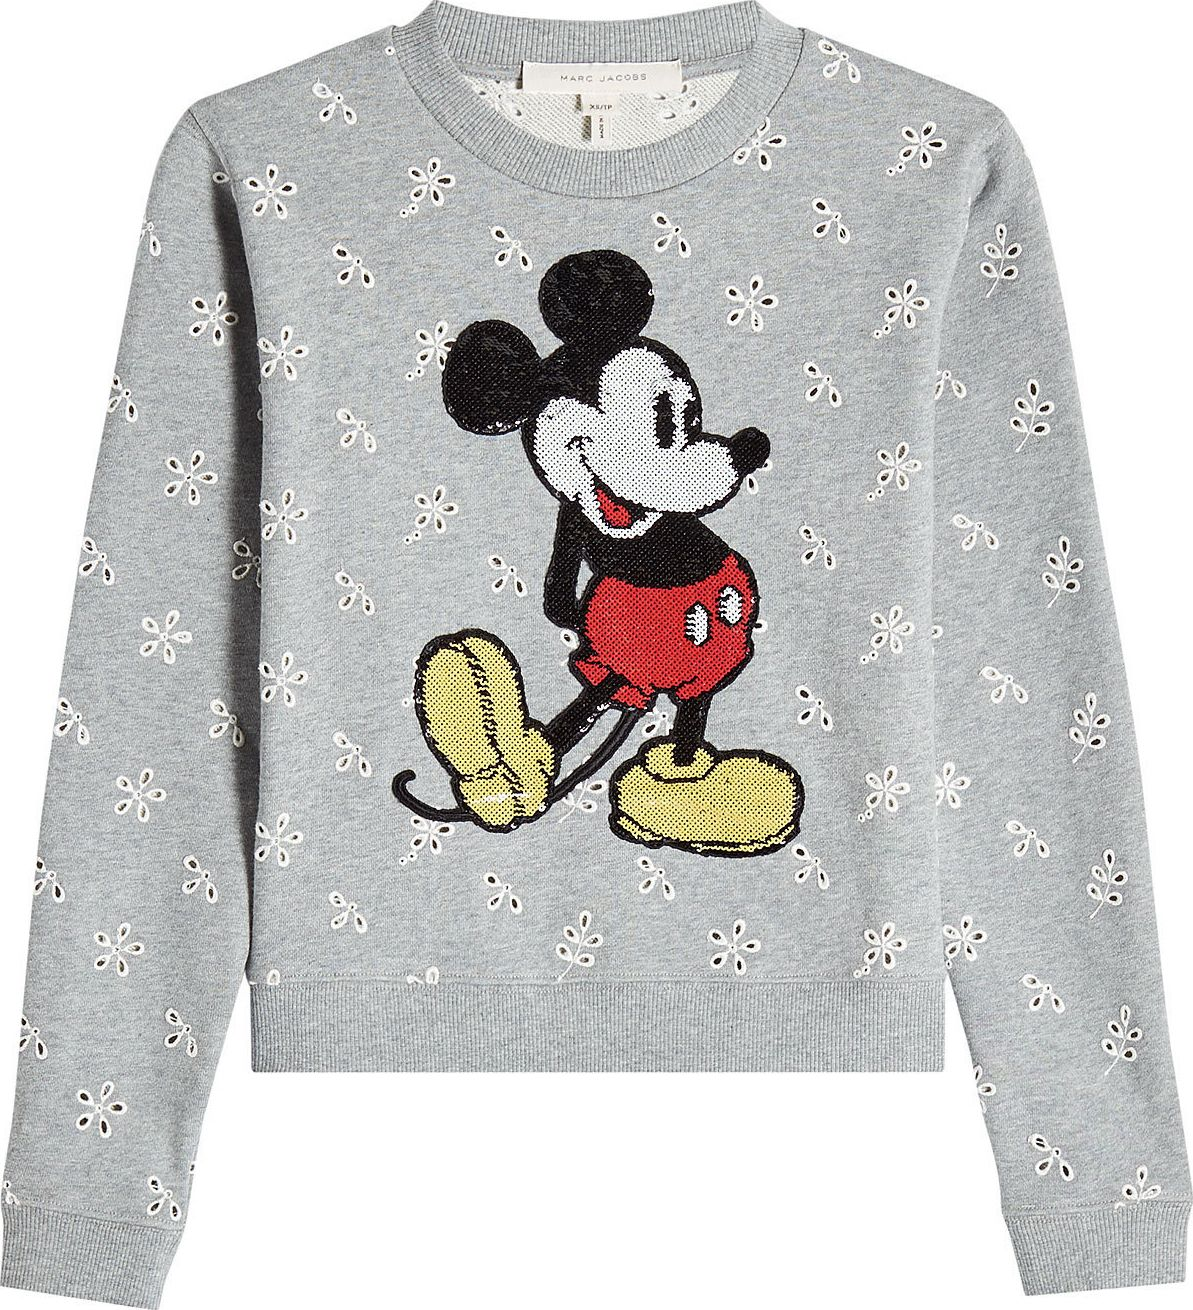 MARC JACOBS - Cotton Sweatshirt with Sequin Embellishment